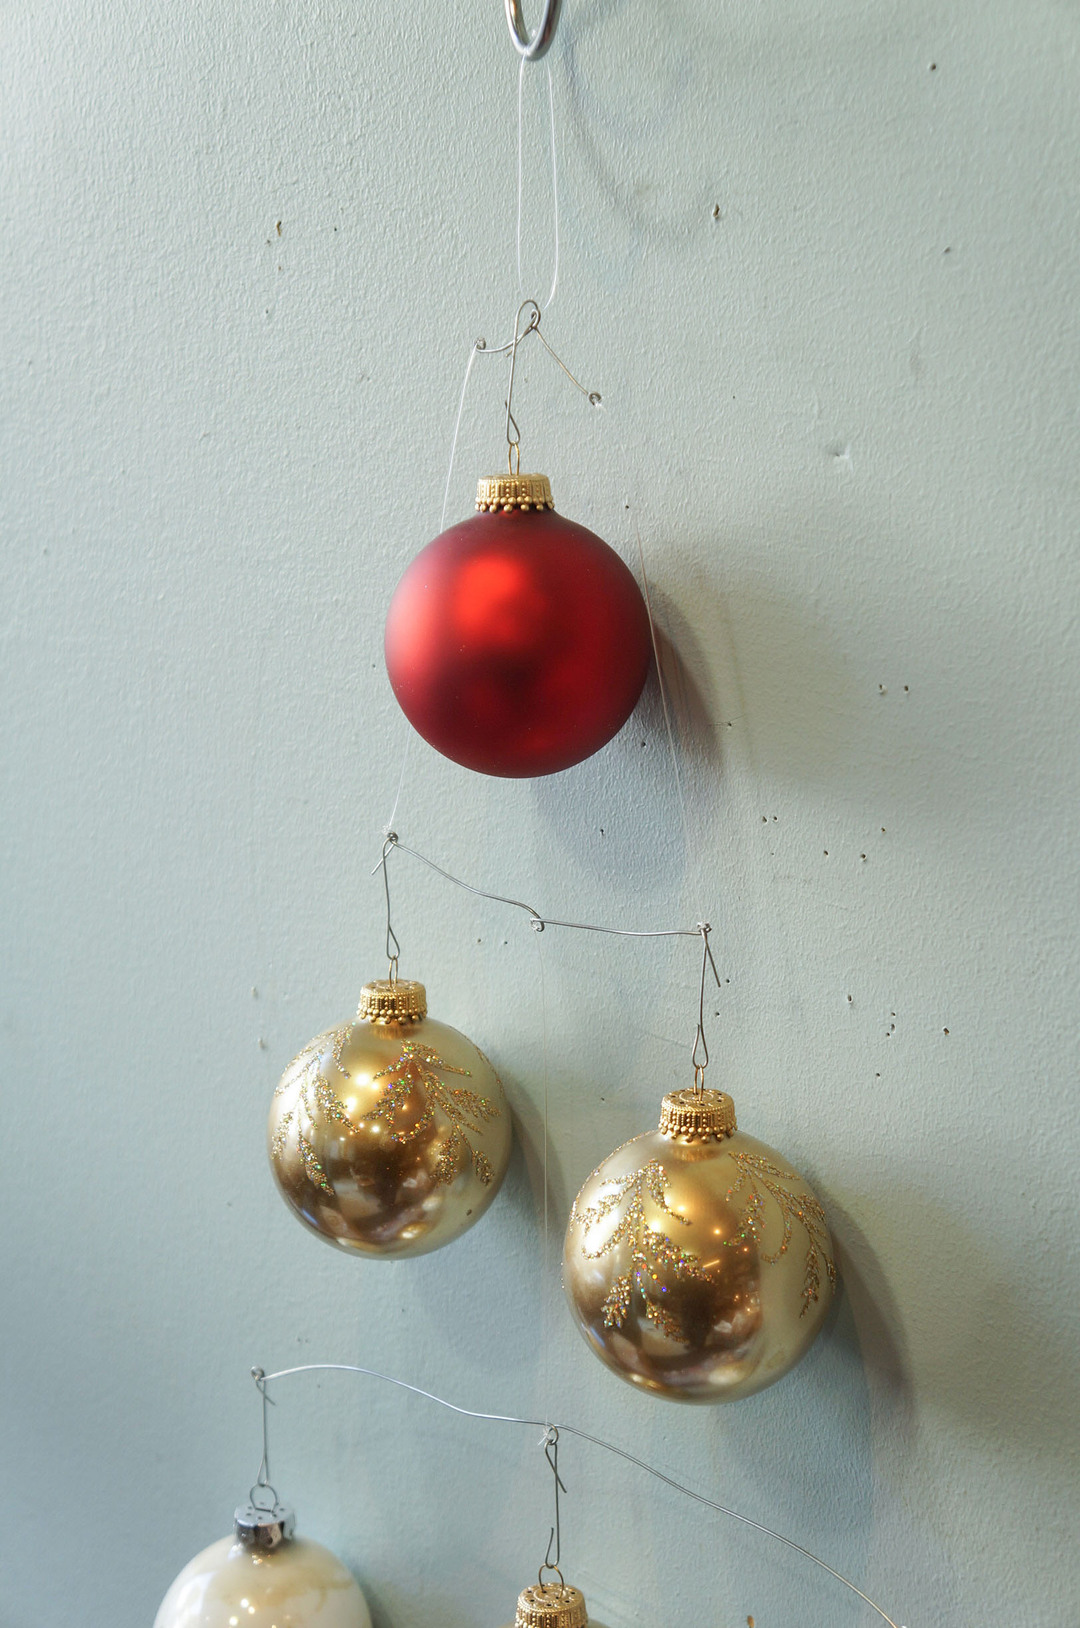 Vintage Blown Glass Christmas Ball Ornament/ヴィンテージ クリスマス オーナメント 吹きガラス ボール レトロ 6個セット 8